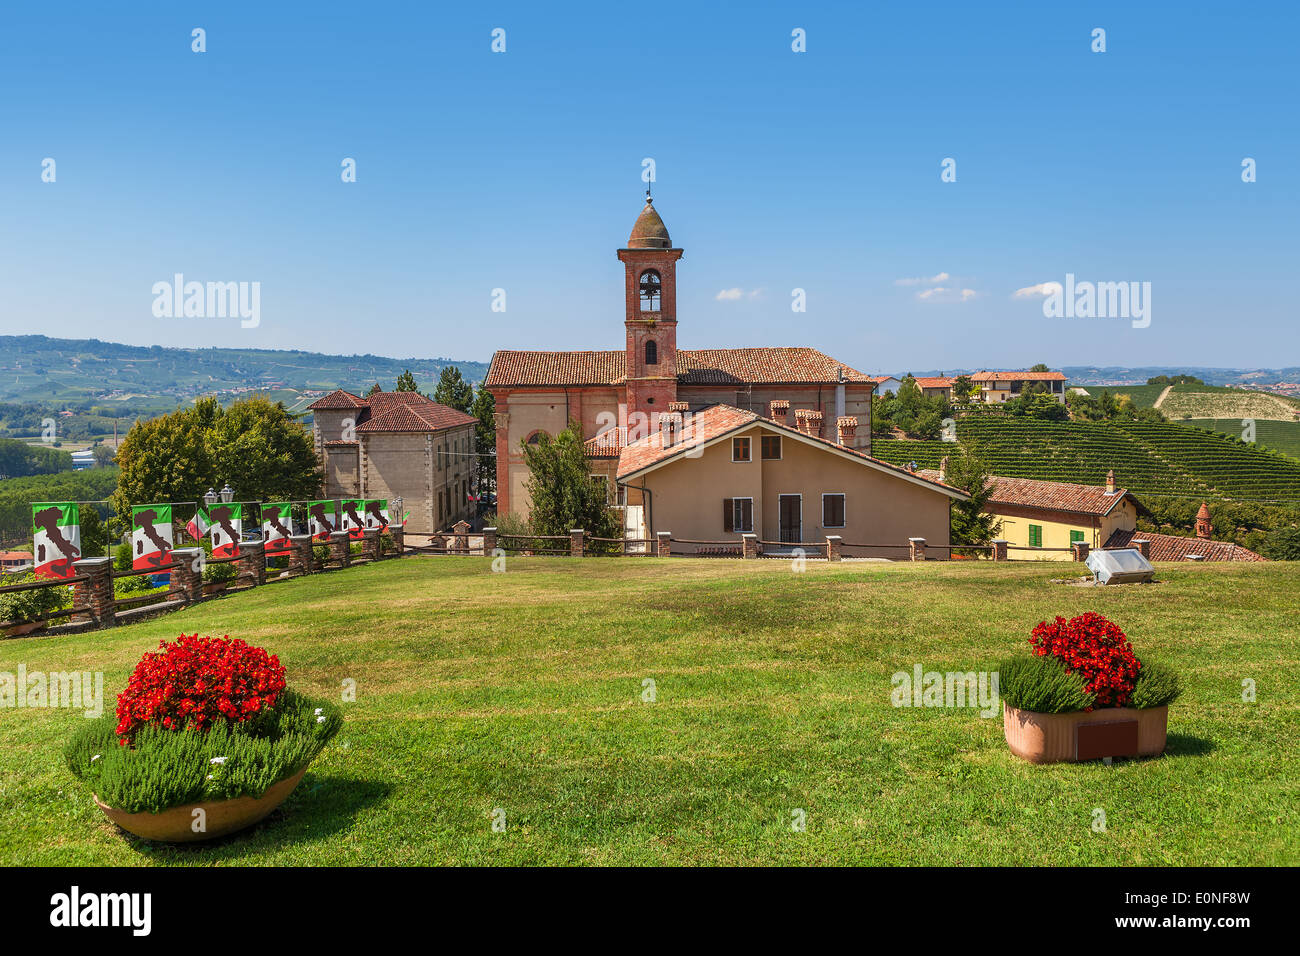 Green lawn in front of small rural church under blue sky in Piedmont, Northern Italy. - Stock Image